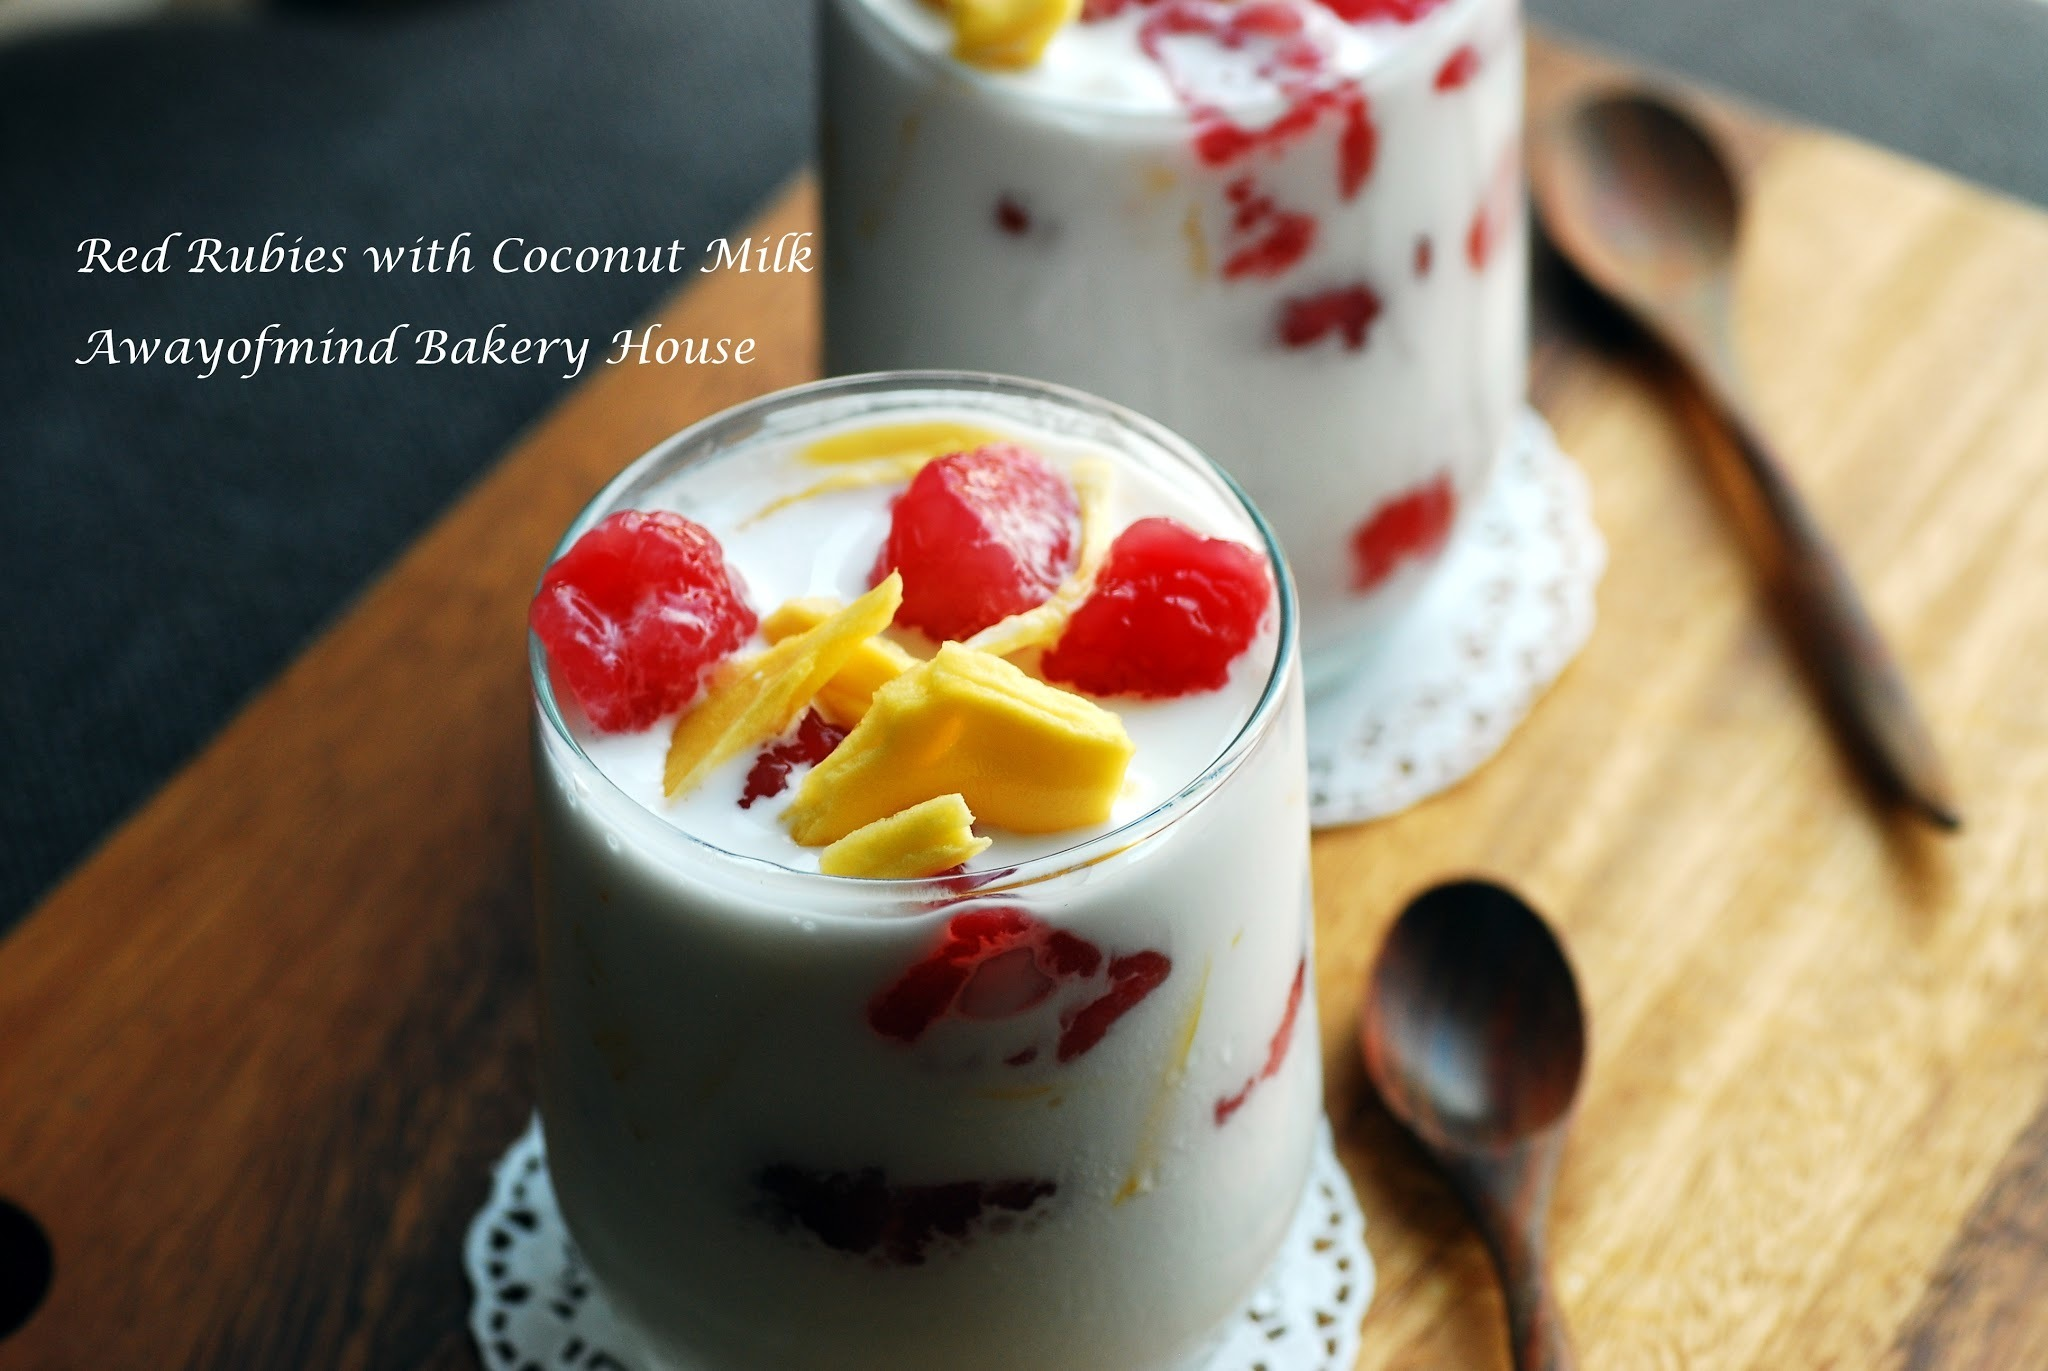 Red Rubies with Coconut Milk